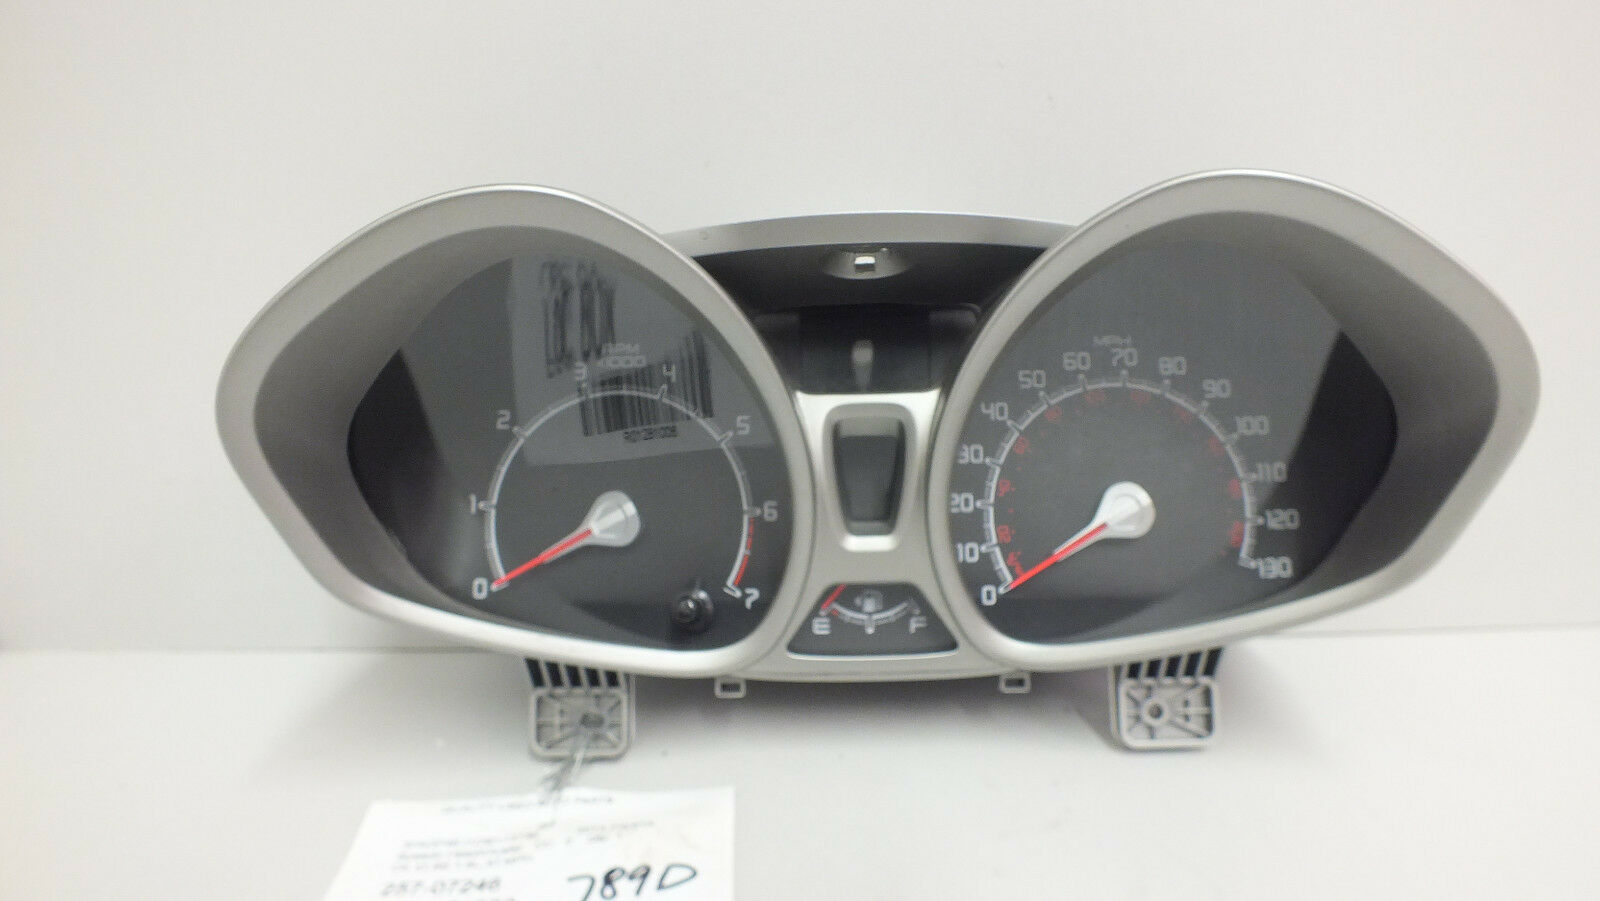 Primary image for 13 2013 FORD FIESTA SE 1.6L AT INSTRUMENT CLUSTER DE8T-10849-CC (25k miles)#789D